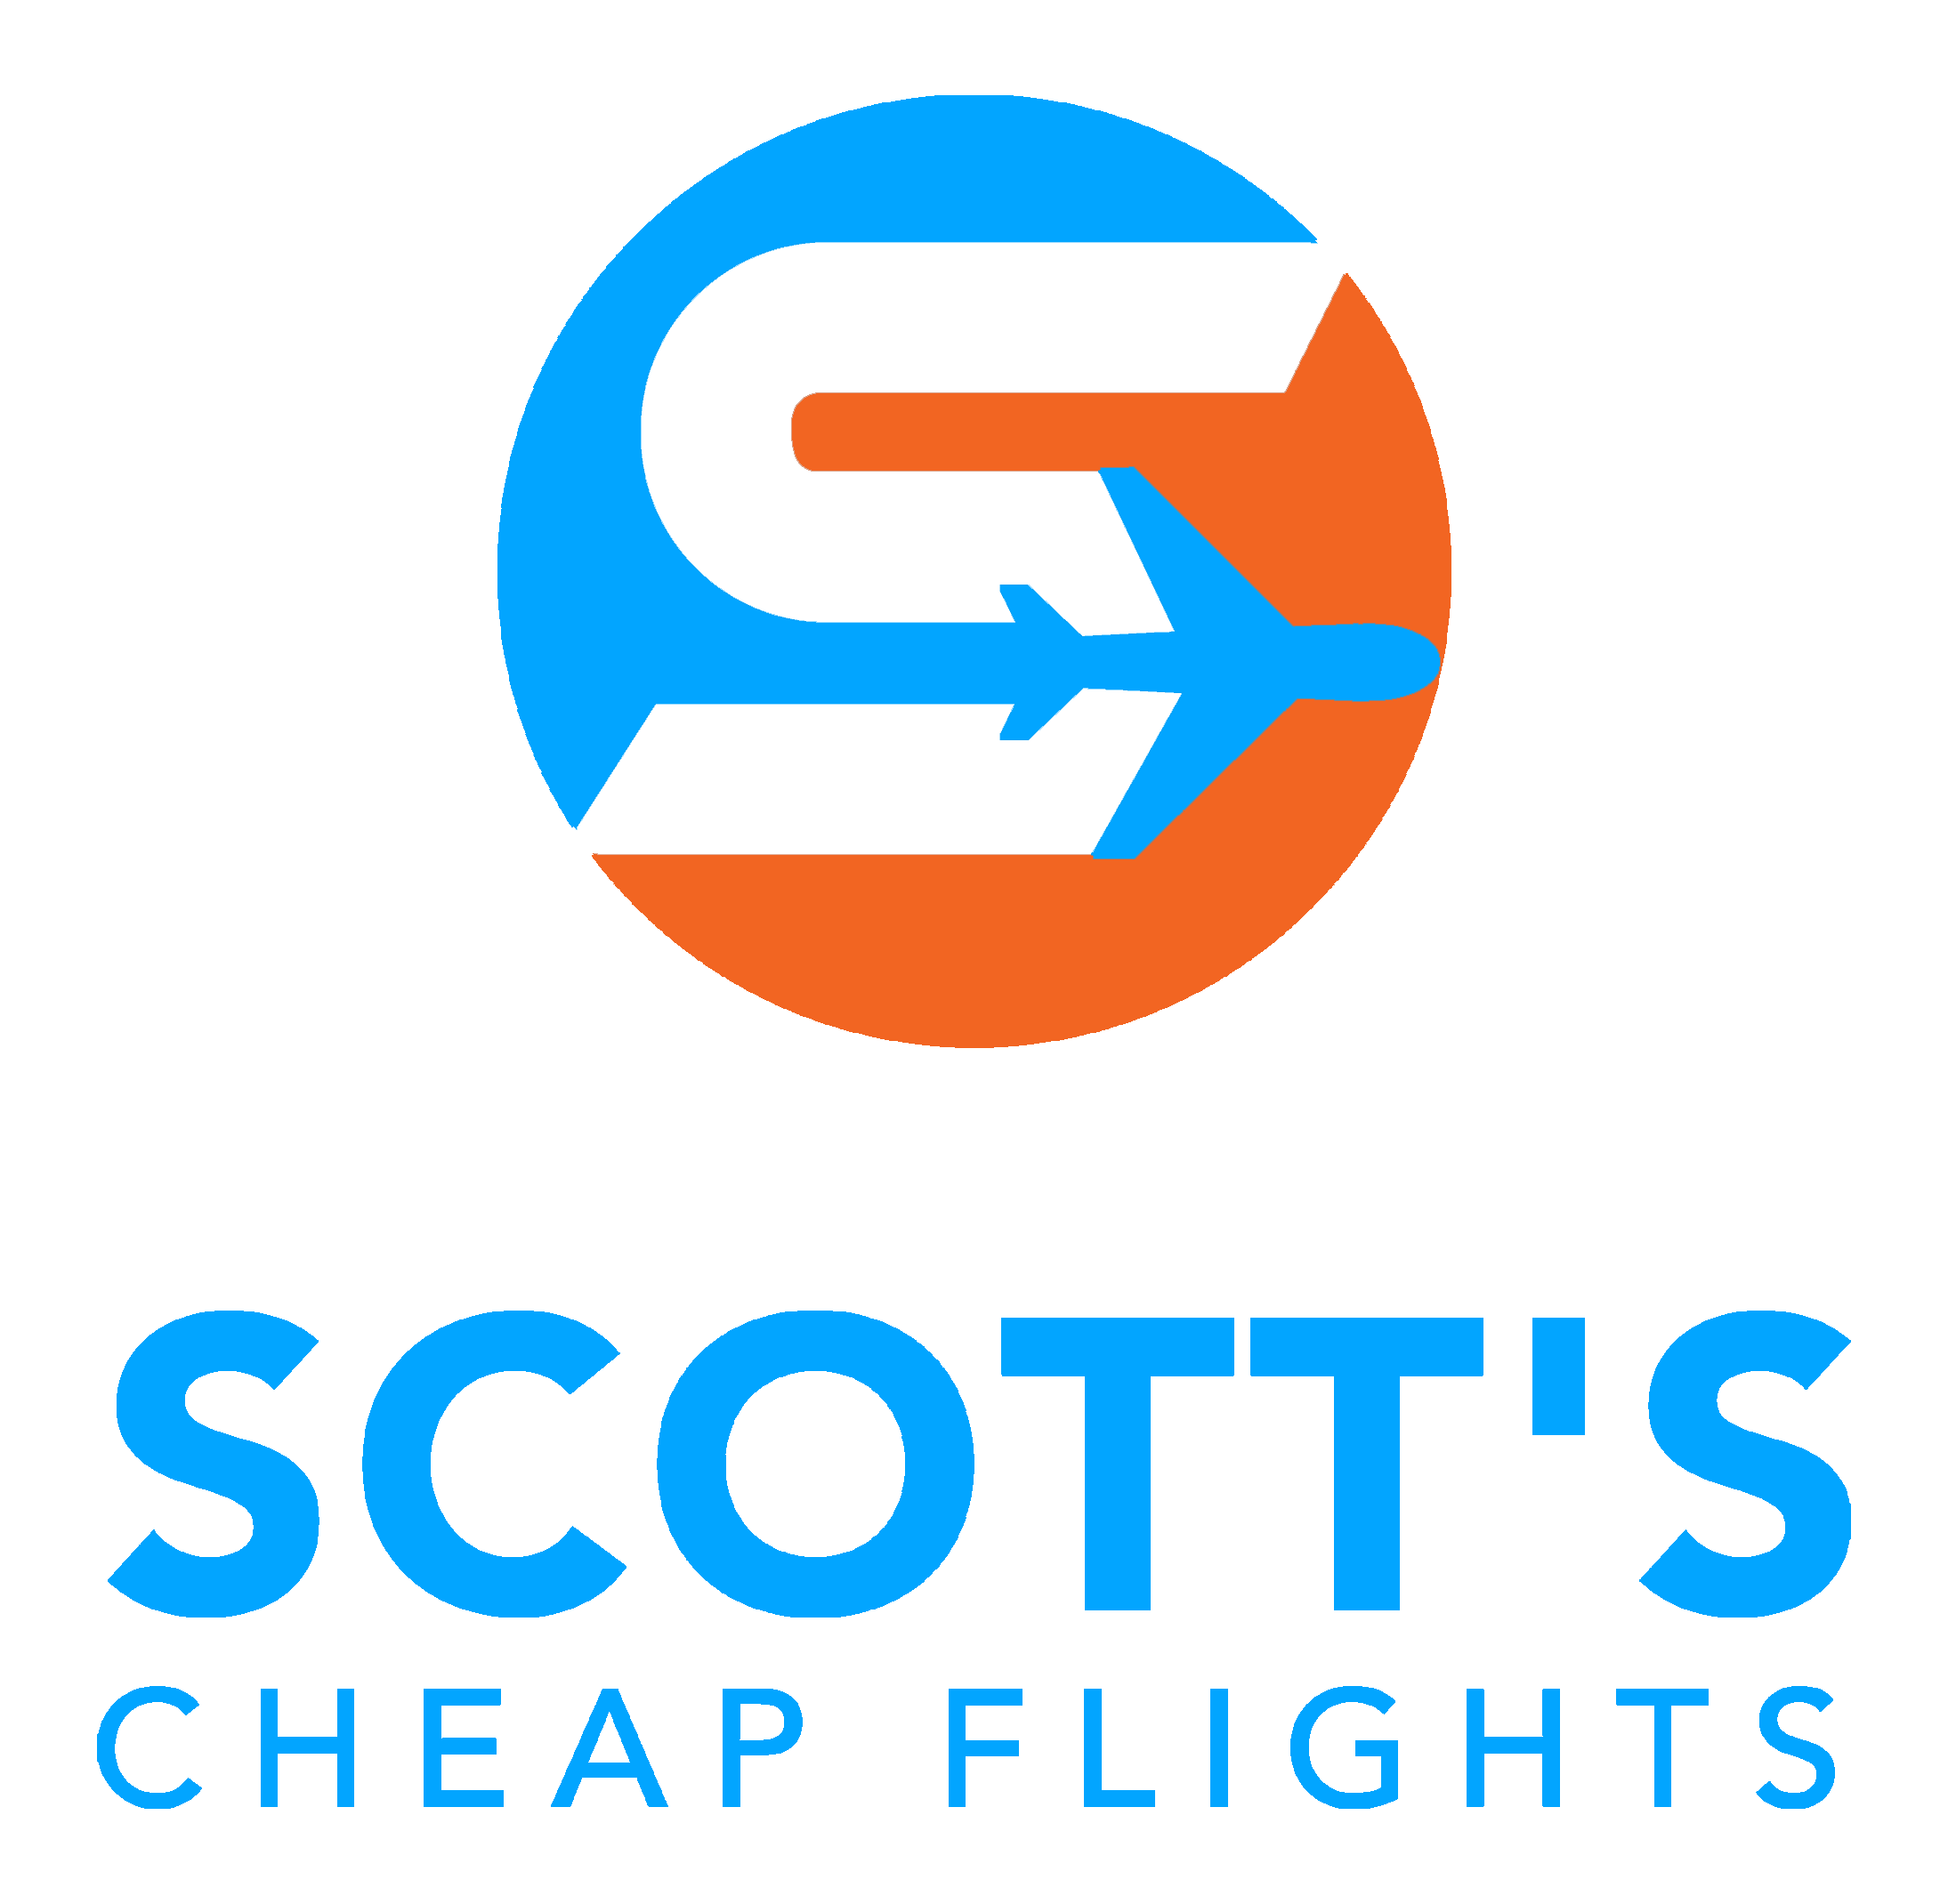 Scott's Cheap Flights